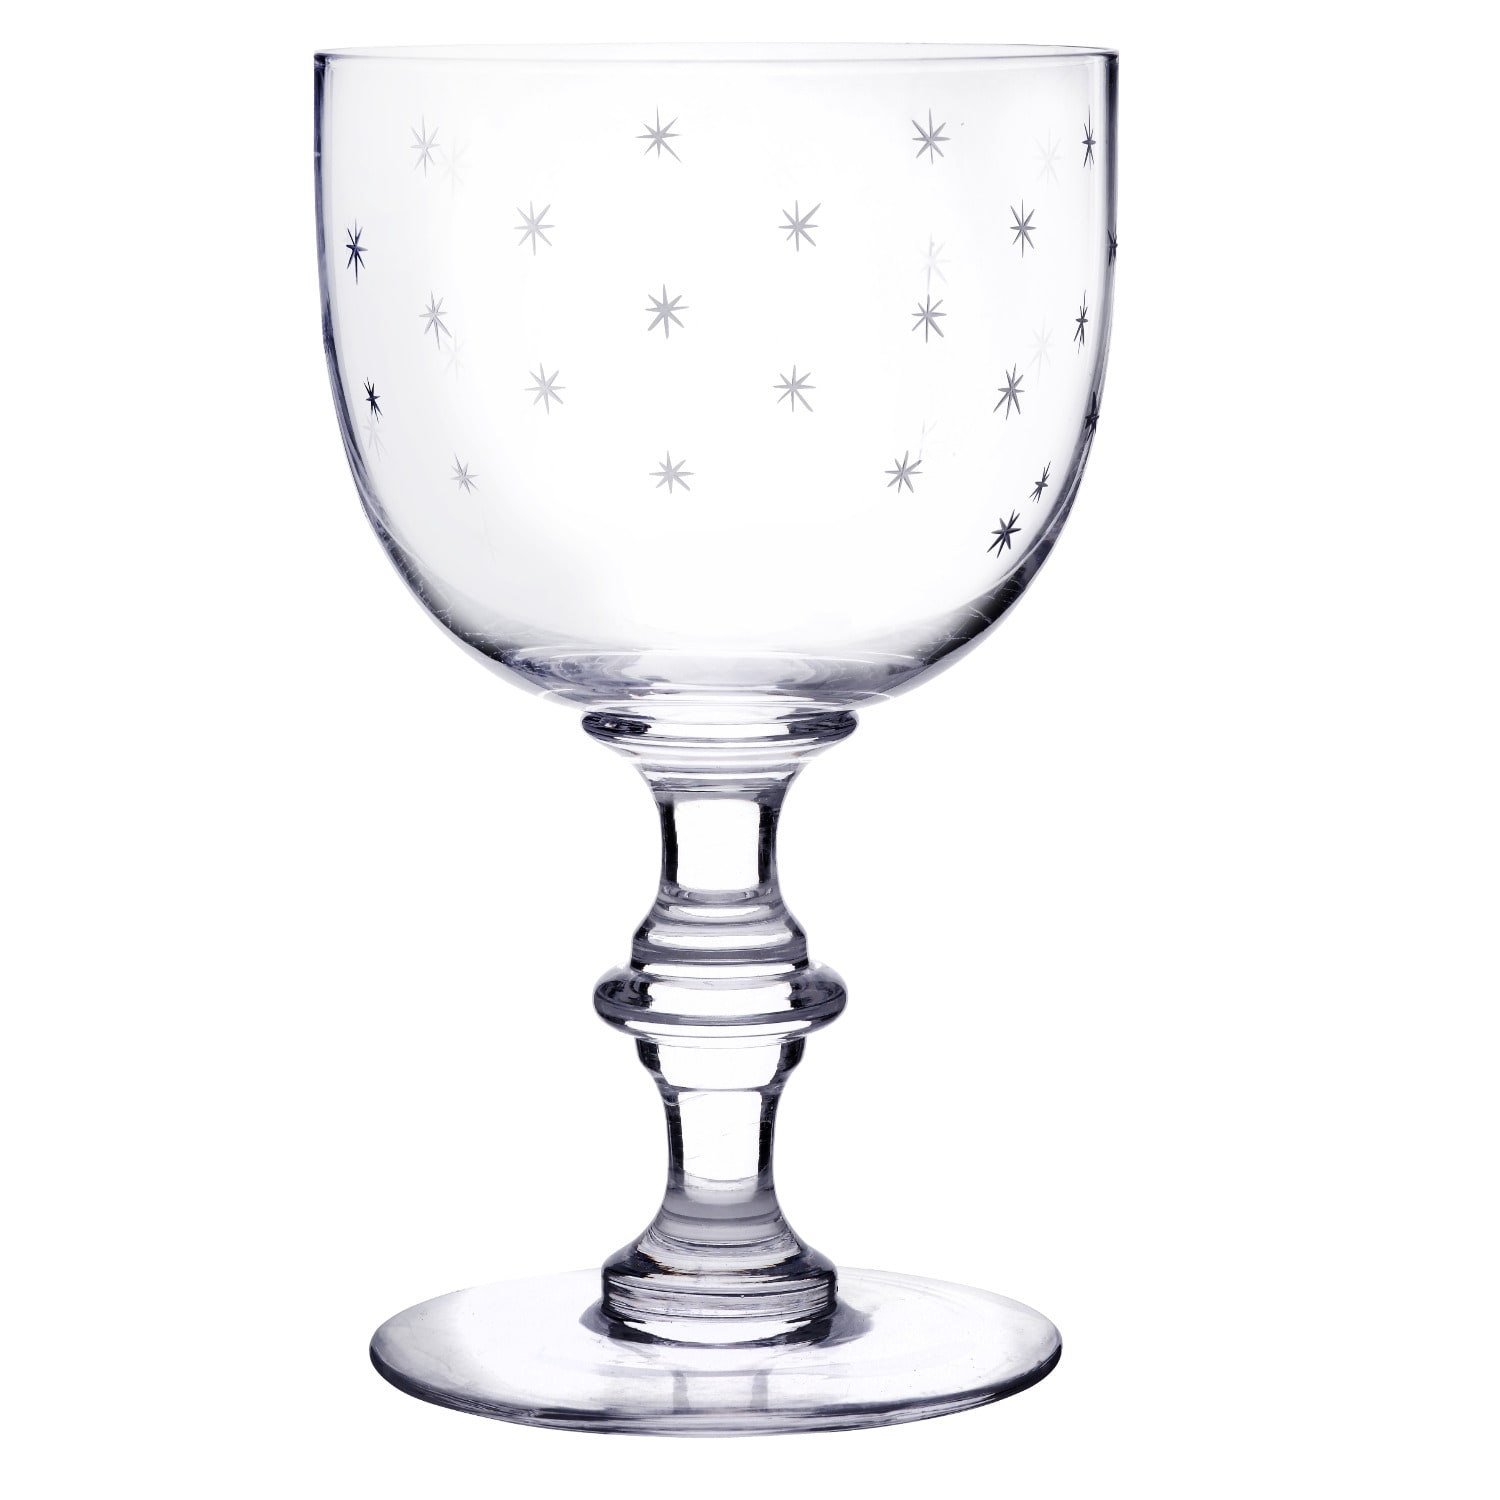 The Vintage List - Six Hand-Engraved Crystal Wine Goblets with Stars Design